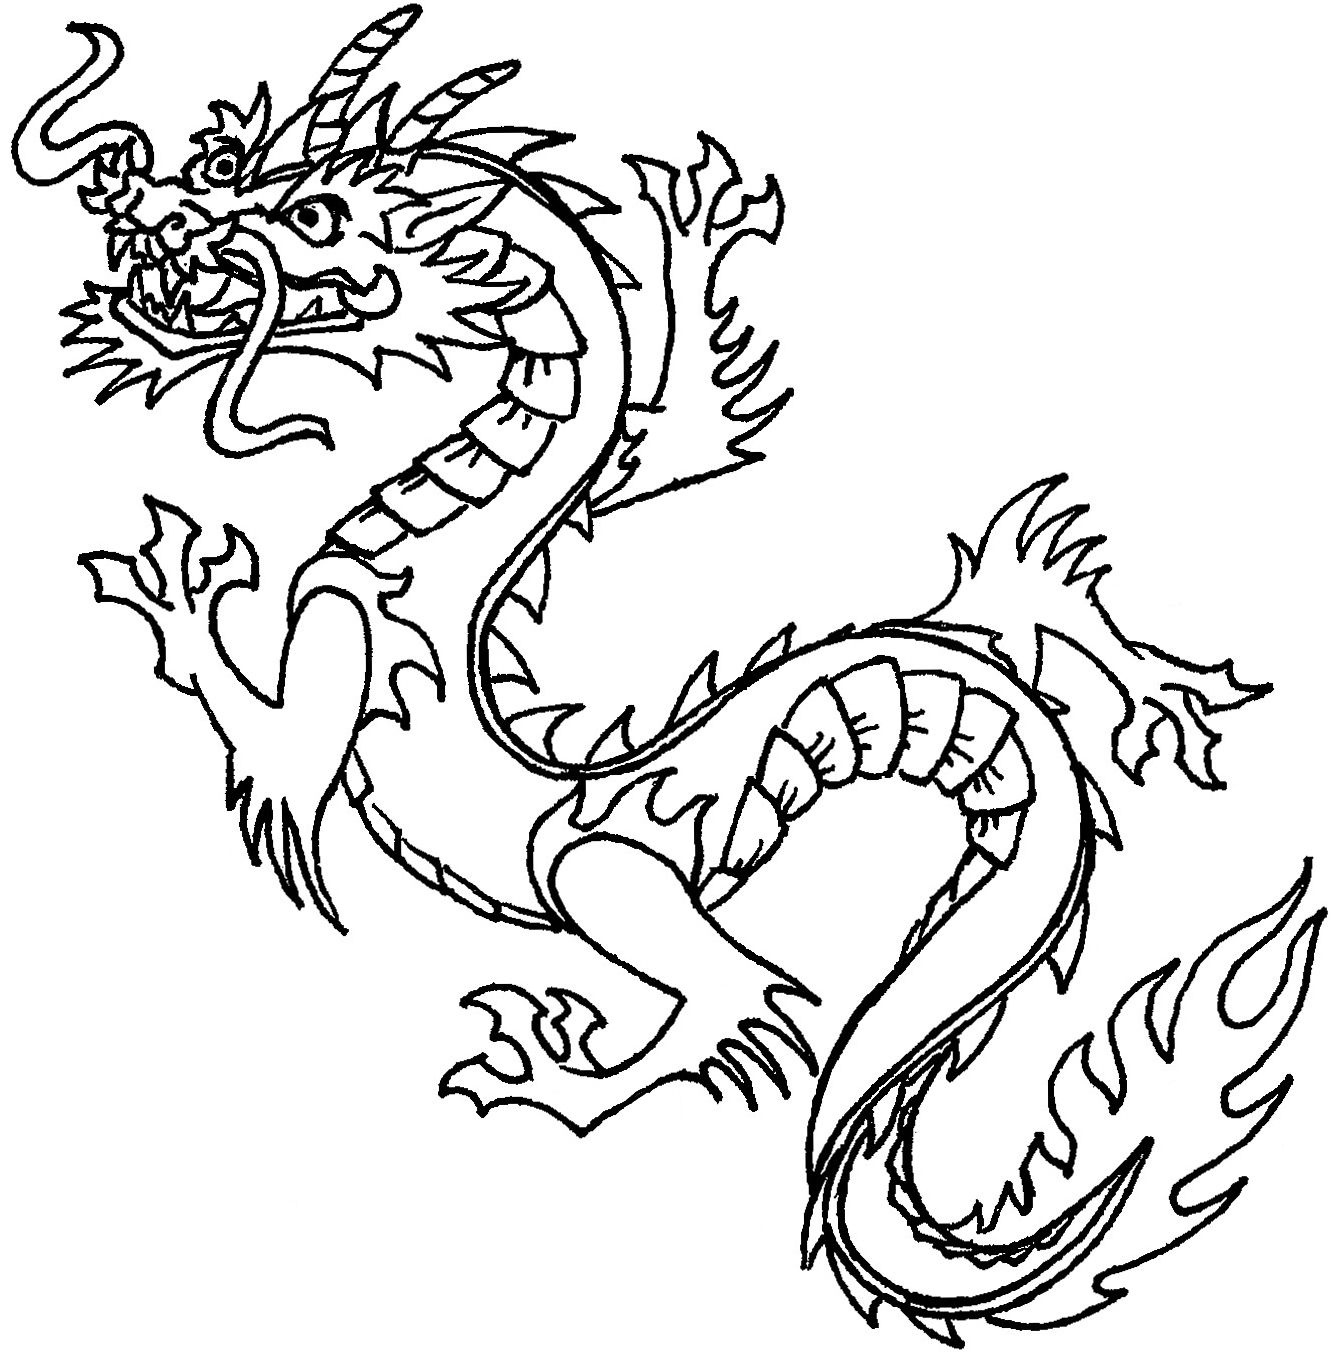 Free Printable Chinese Dragon Coloring Pages For Kids | Stencils - Free Printable Chinese Dragon Coloring Pages